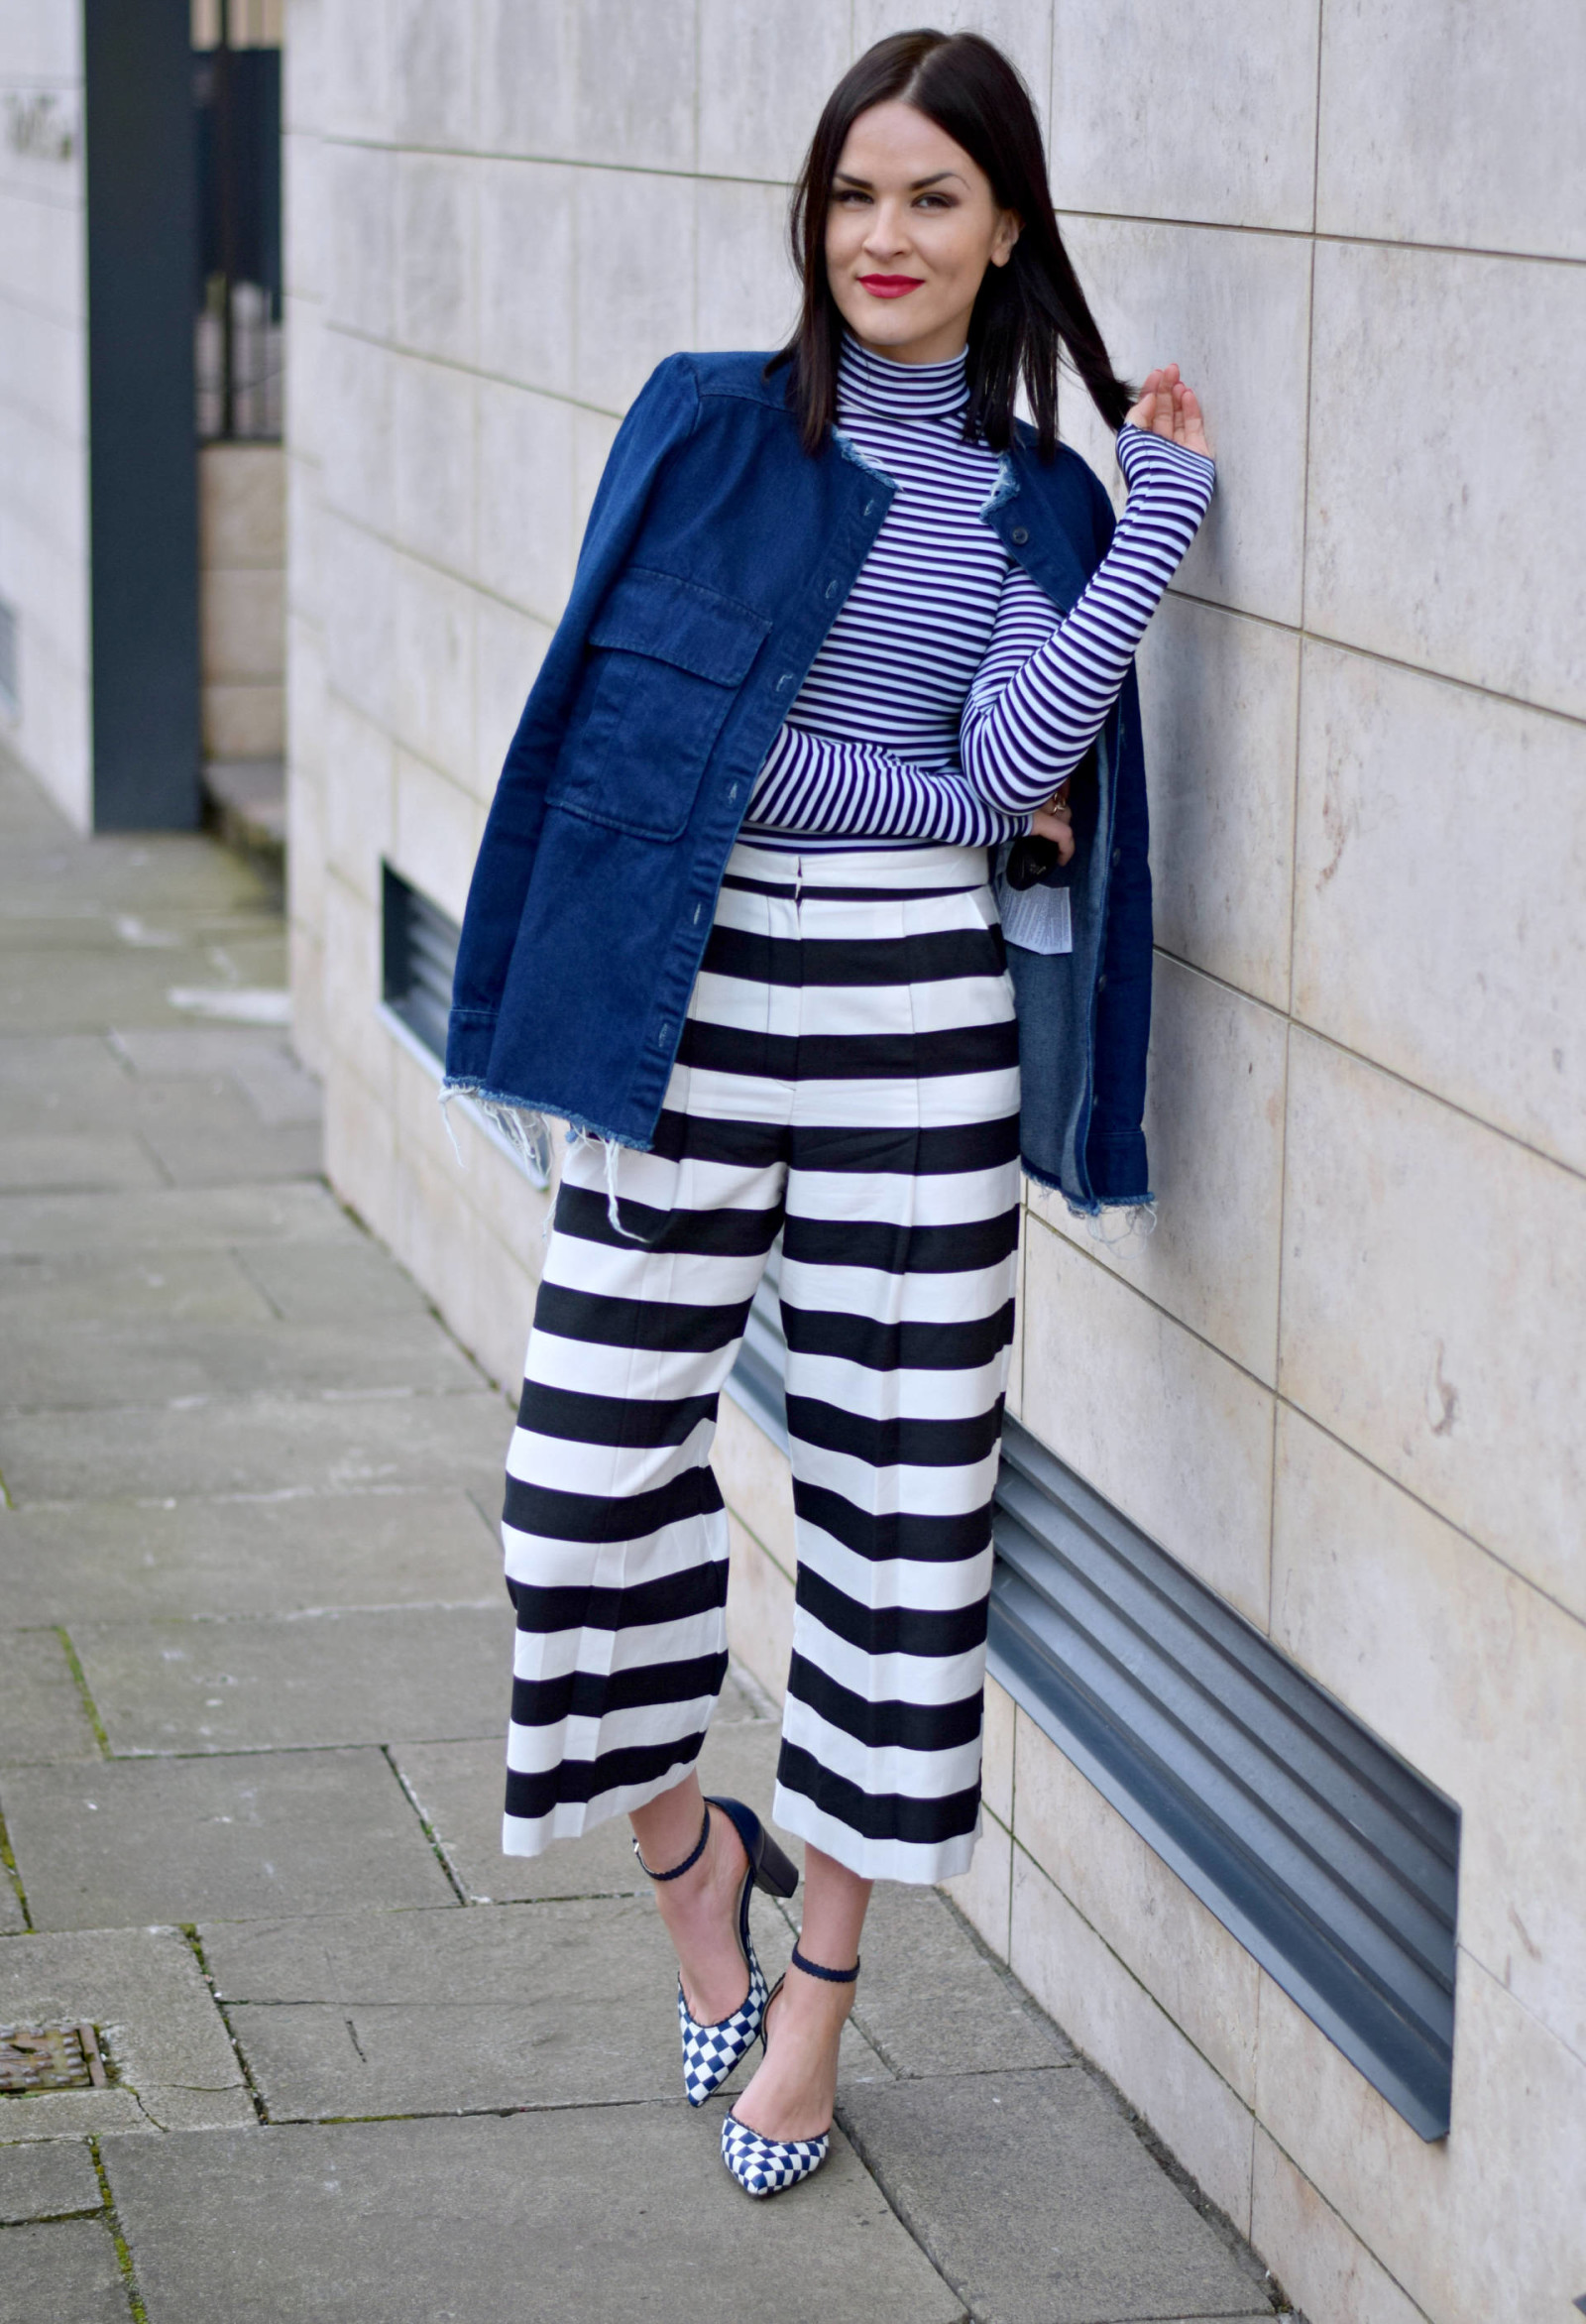 0dc49baecf5 ... STRIPED CULOTTES & frayed denim jacket - LAFOTKA 5 ...